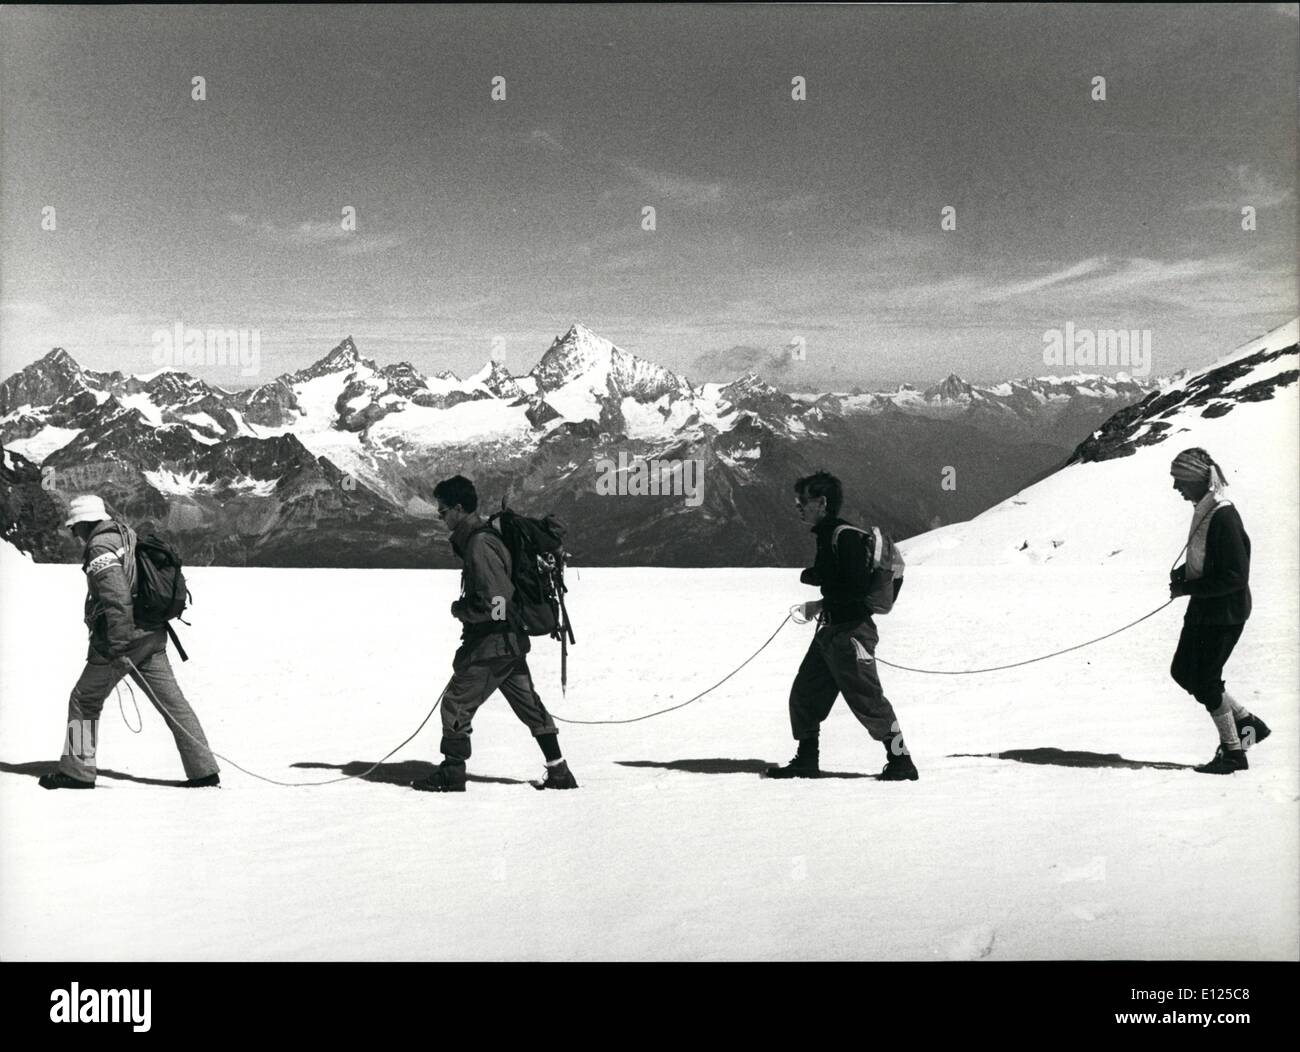 Jul. 07, 1992 - Mountaineering In Ice And Snow: Summer is high season for hiking tours high up in the alps of Switzerland: - Stock Image